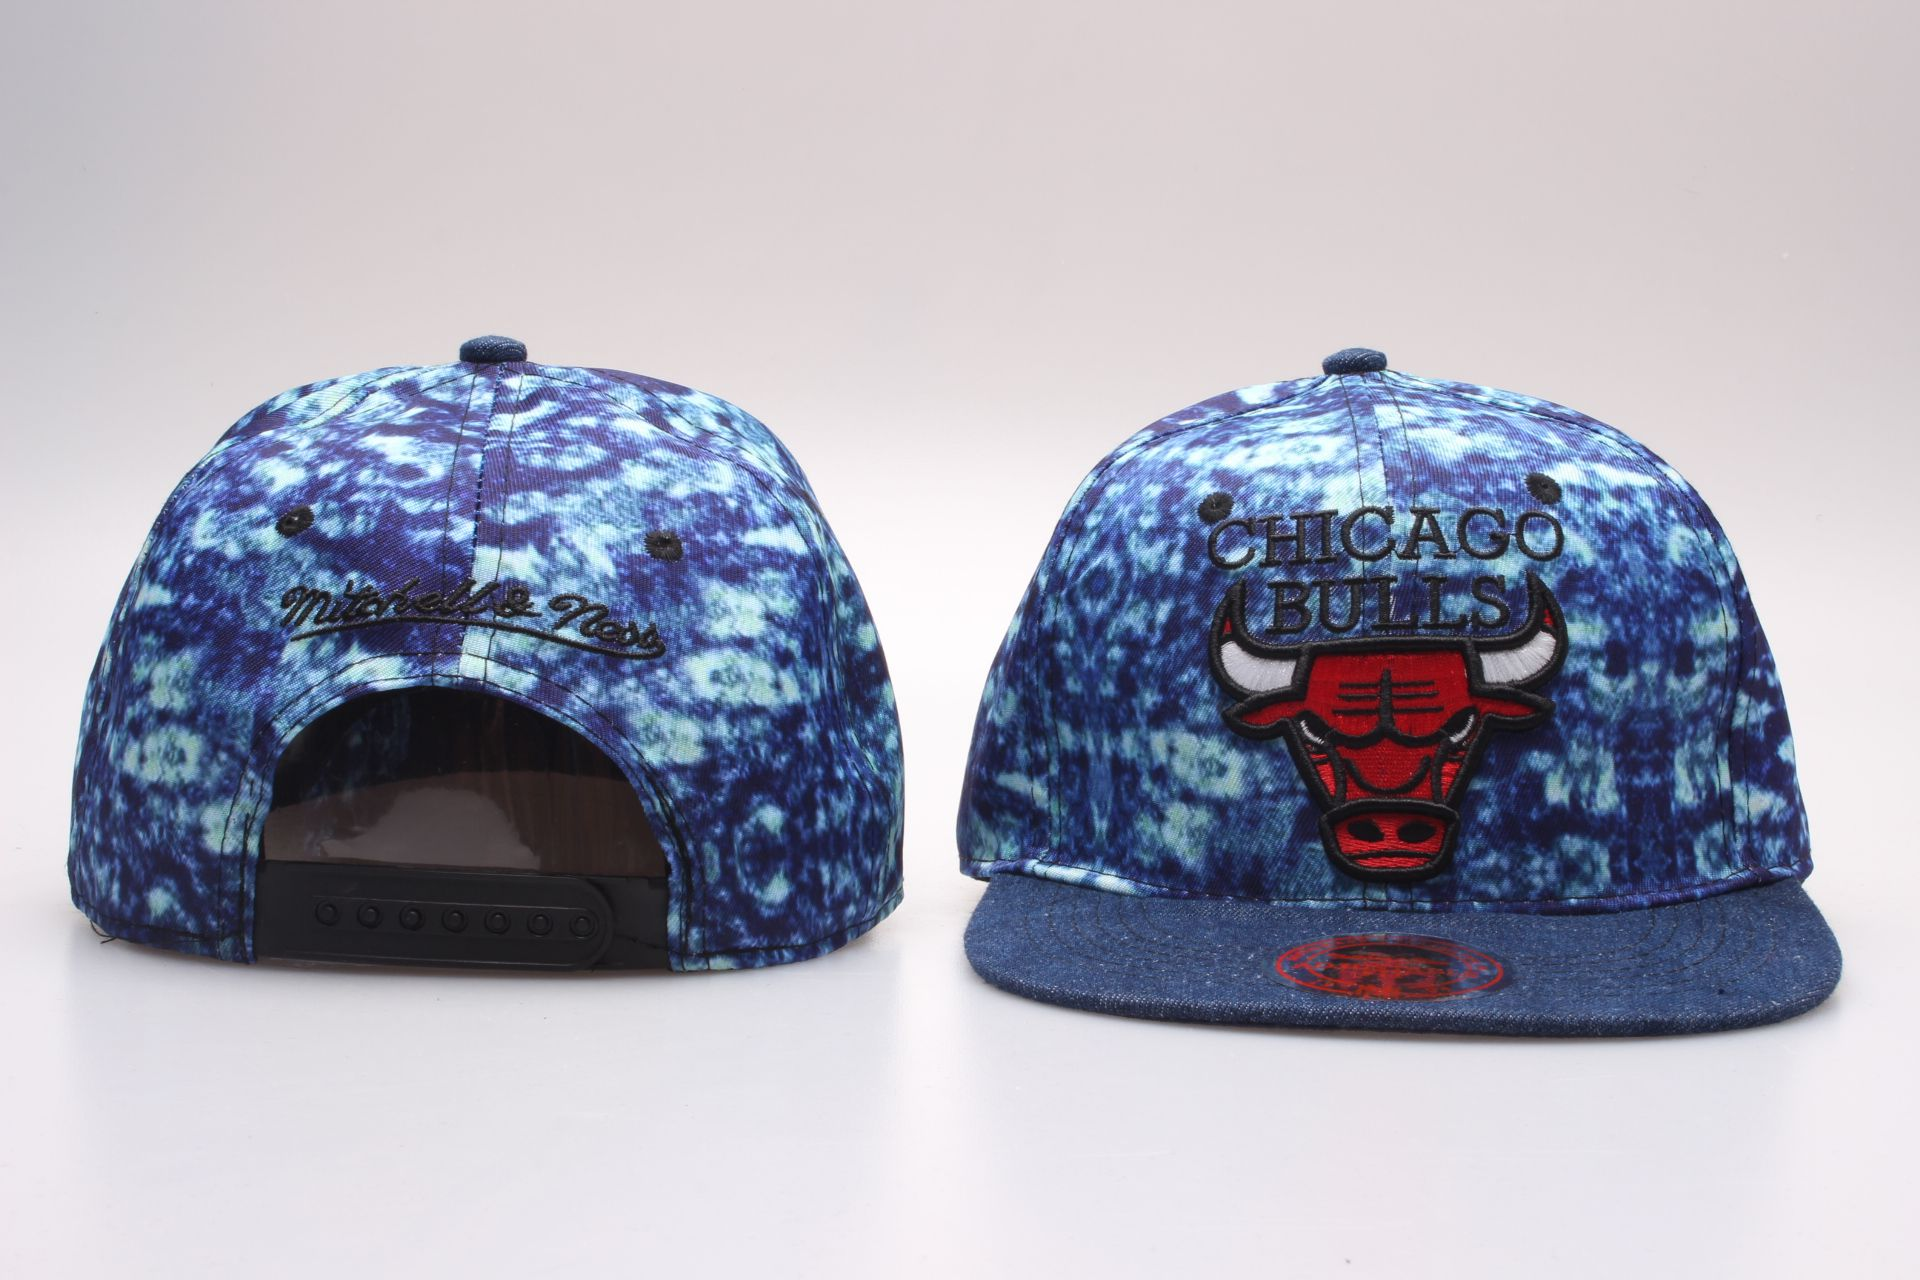 NBA Chicago Bulls Snapback hat 2018112515